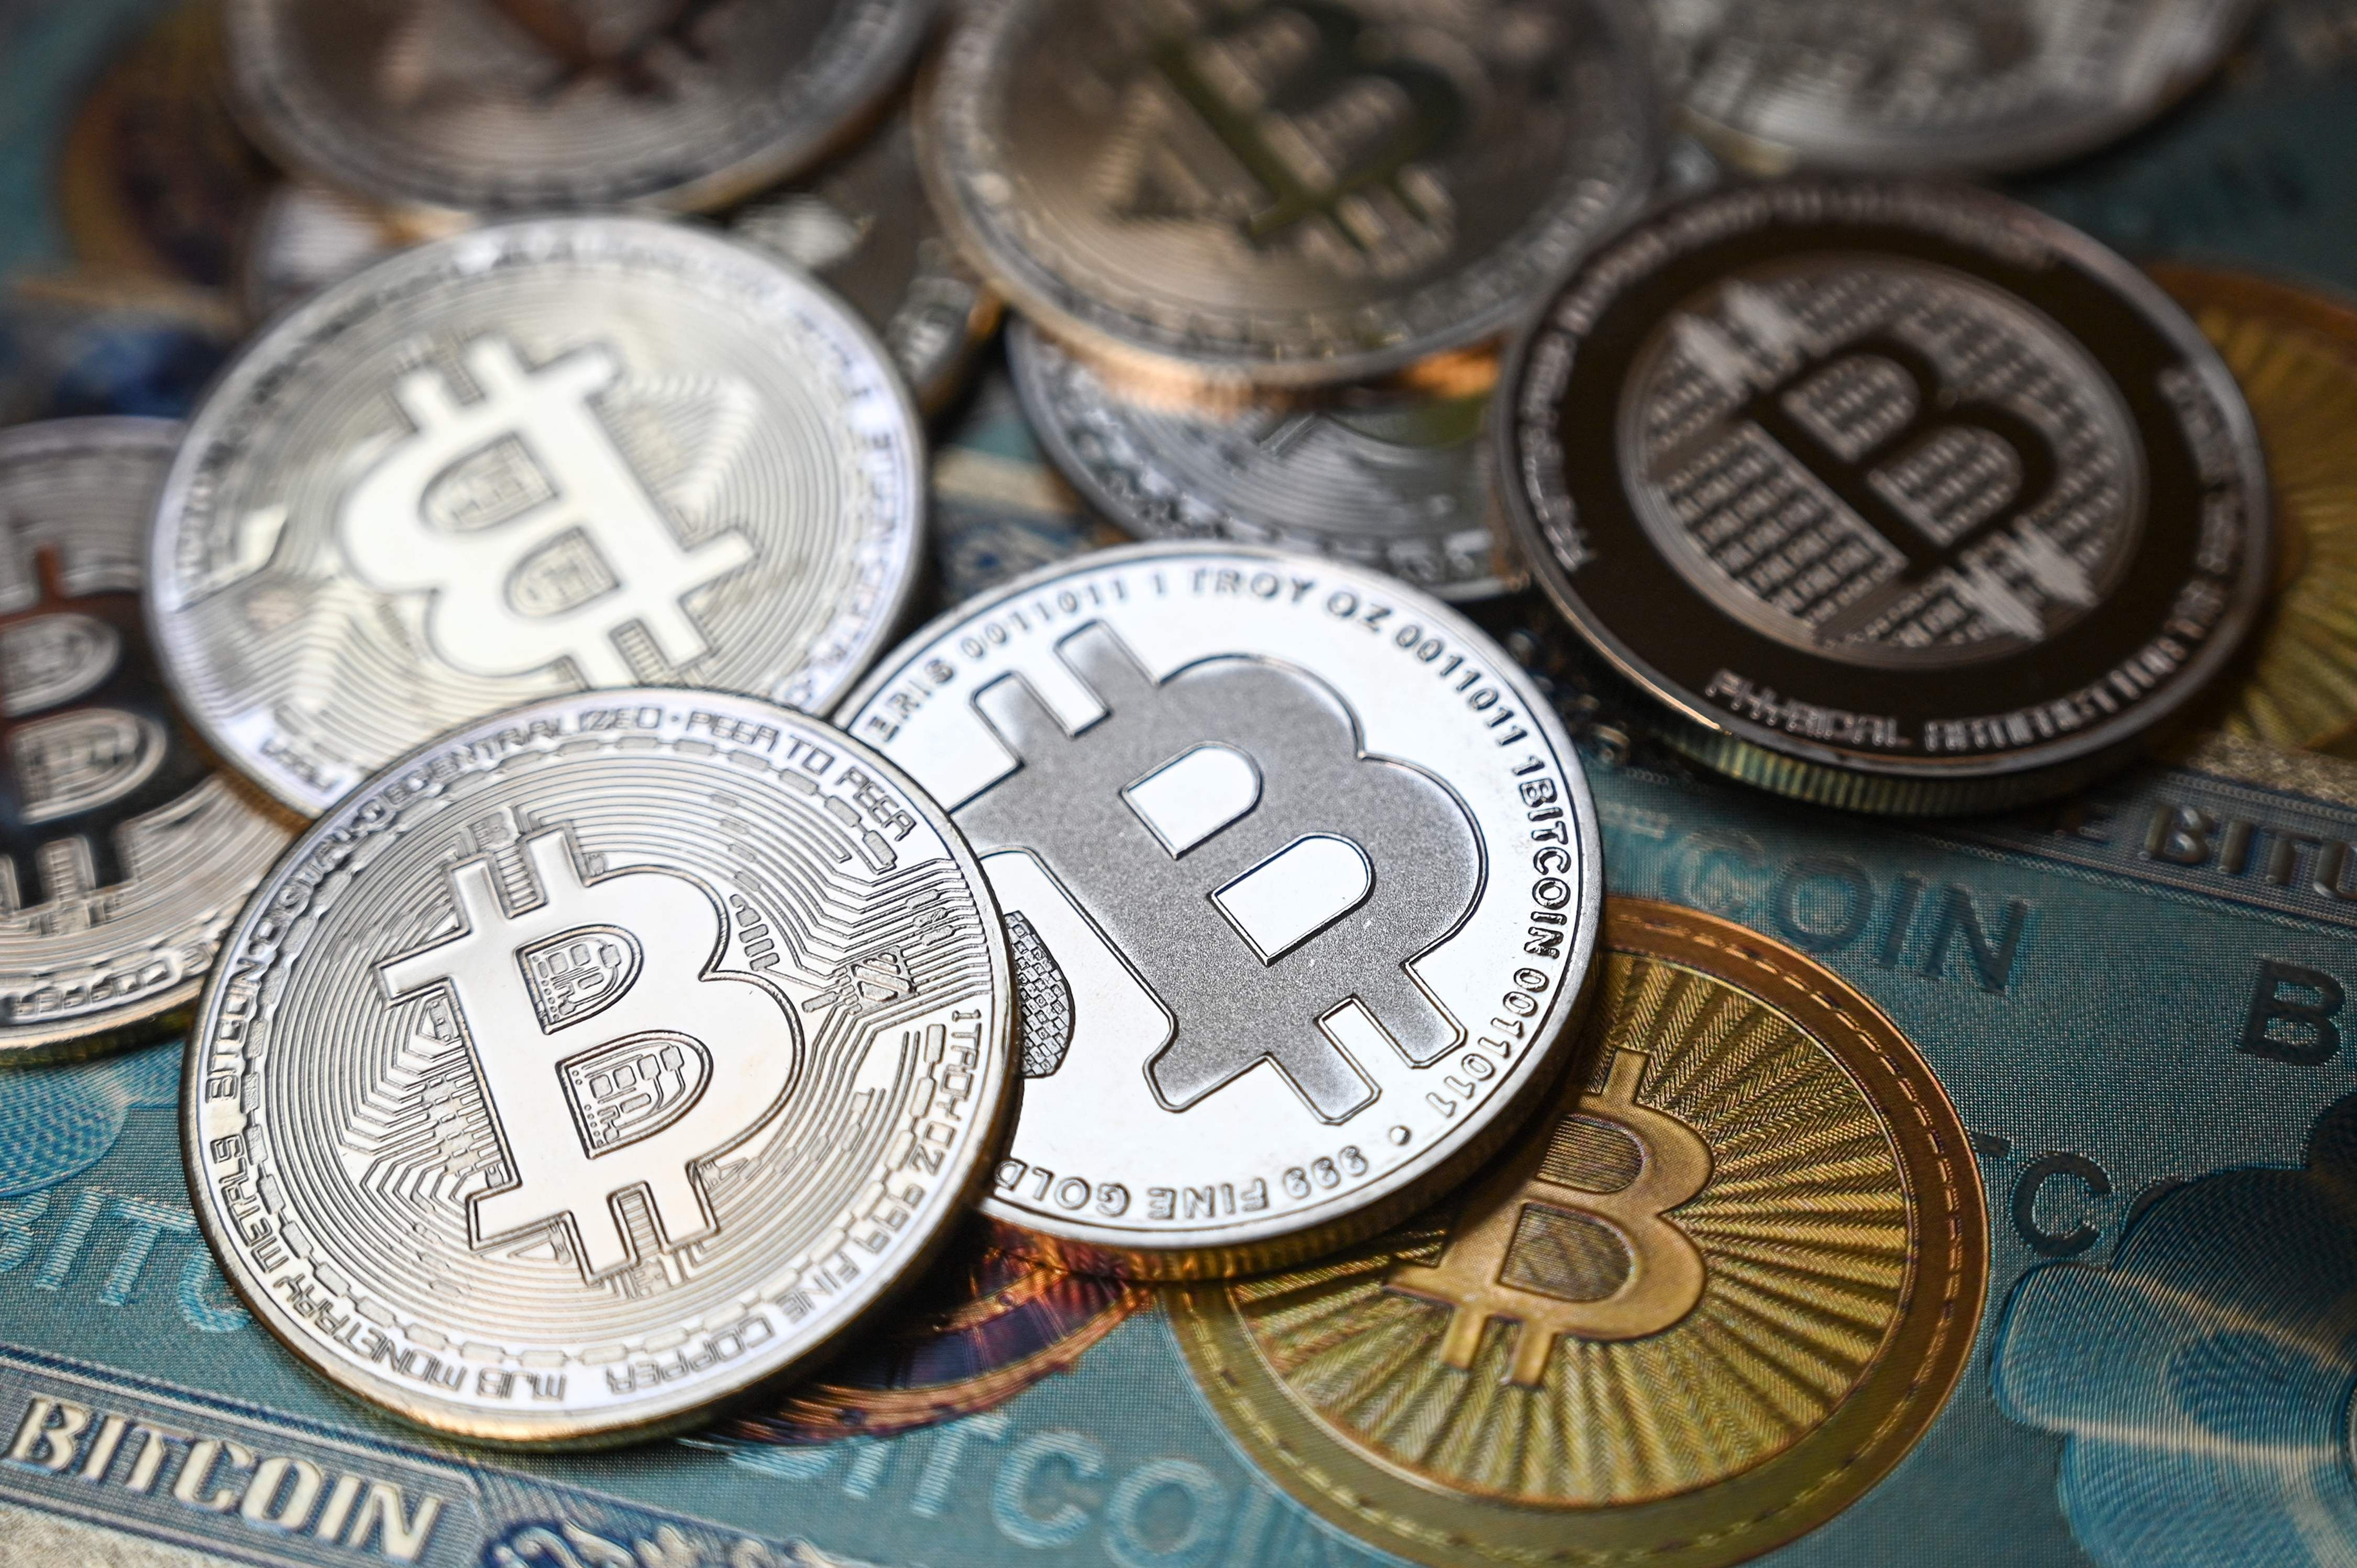 Cryptocurrency exchange FTX Trading valued at $18bn after its largest funding round